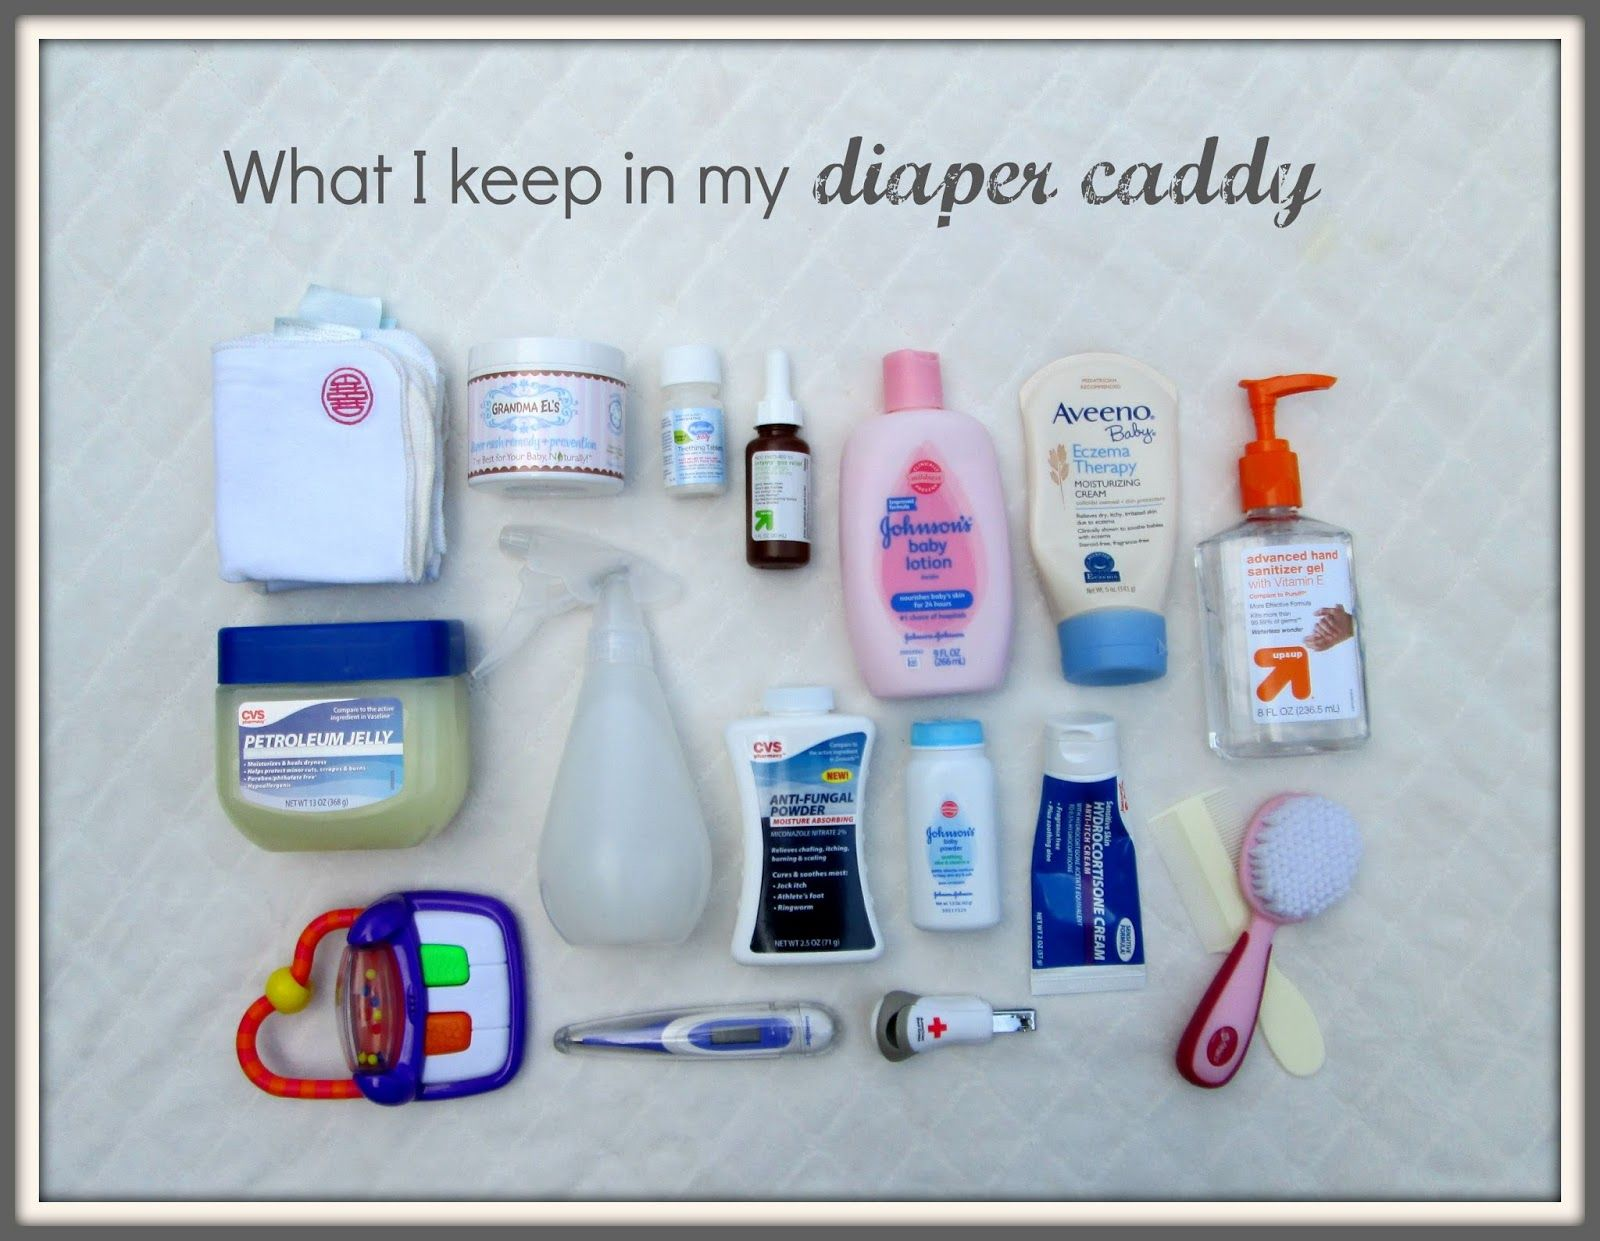 What I Keep in my Organized Diaper Caddy | Diaper caddy, Diapers and ...